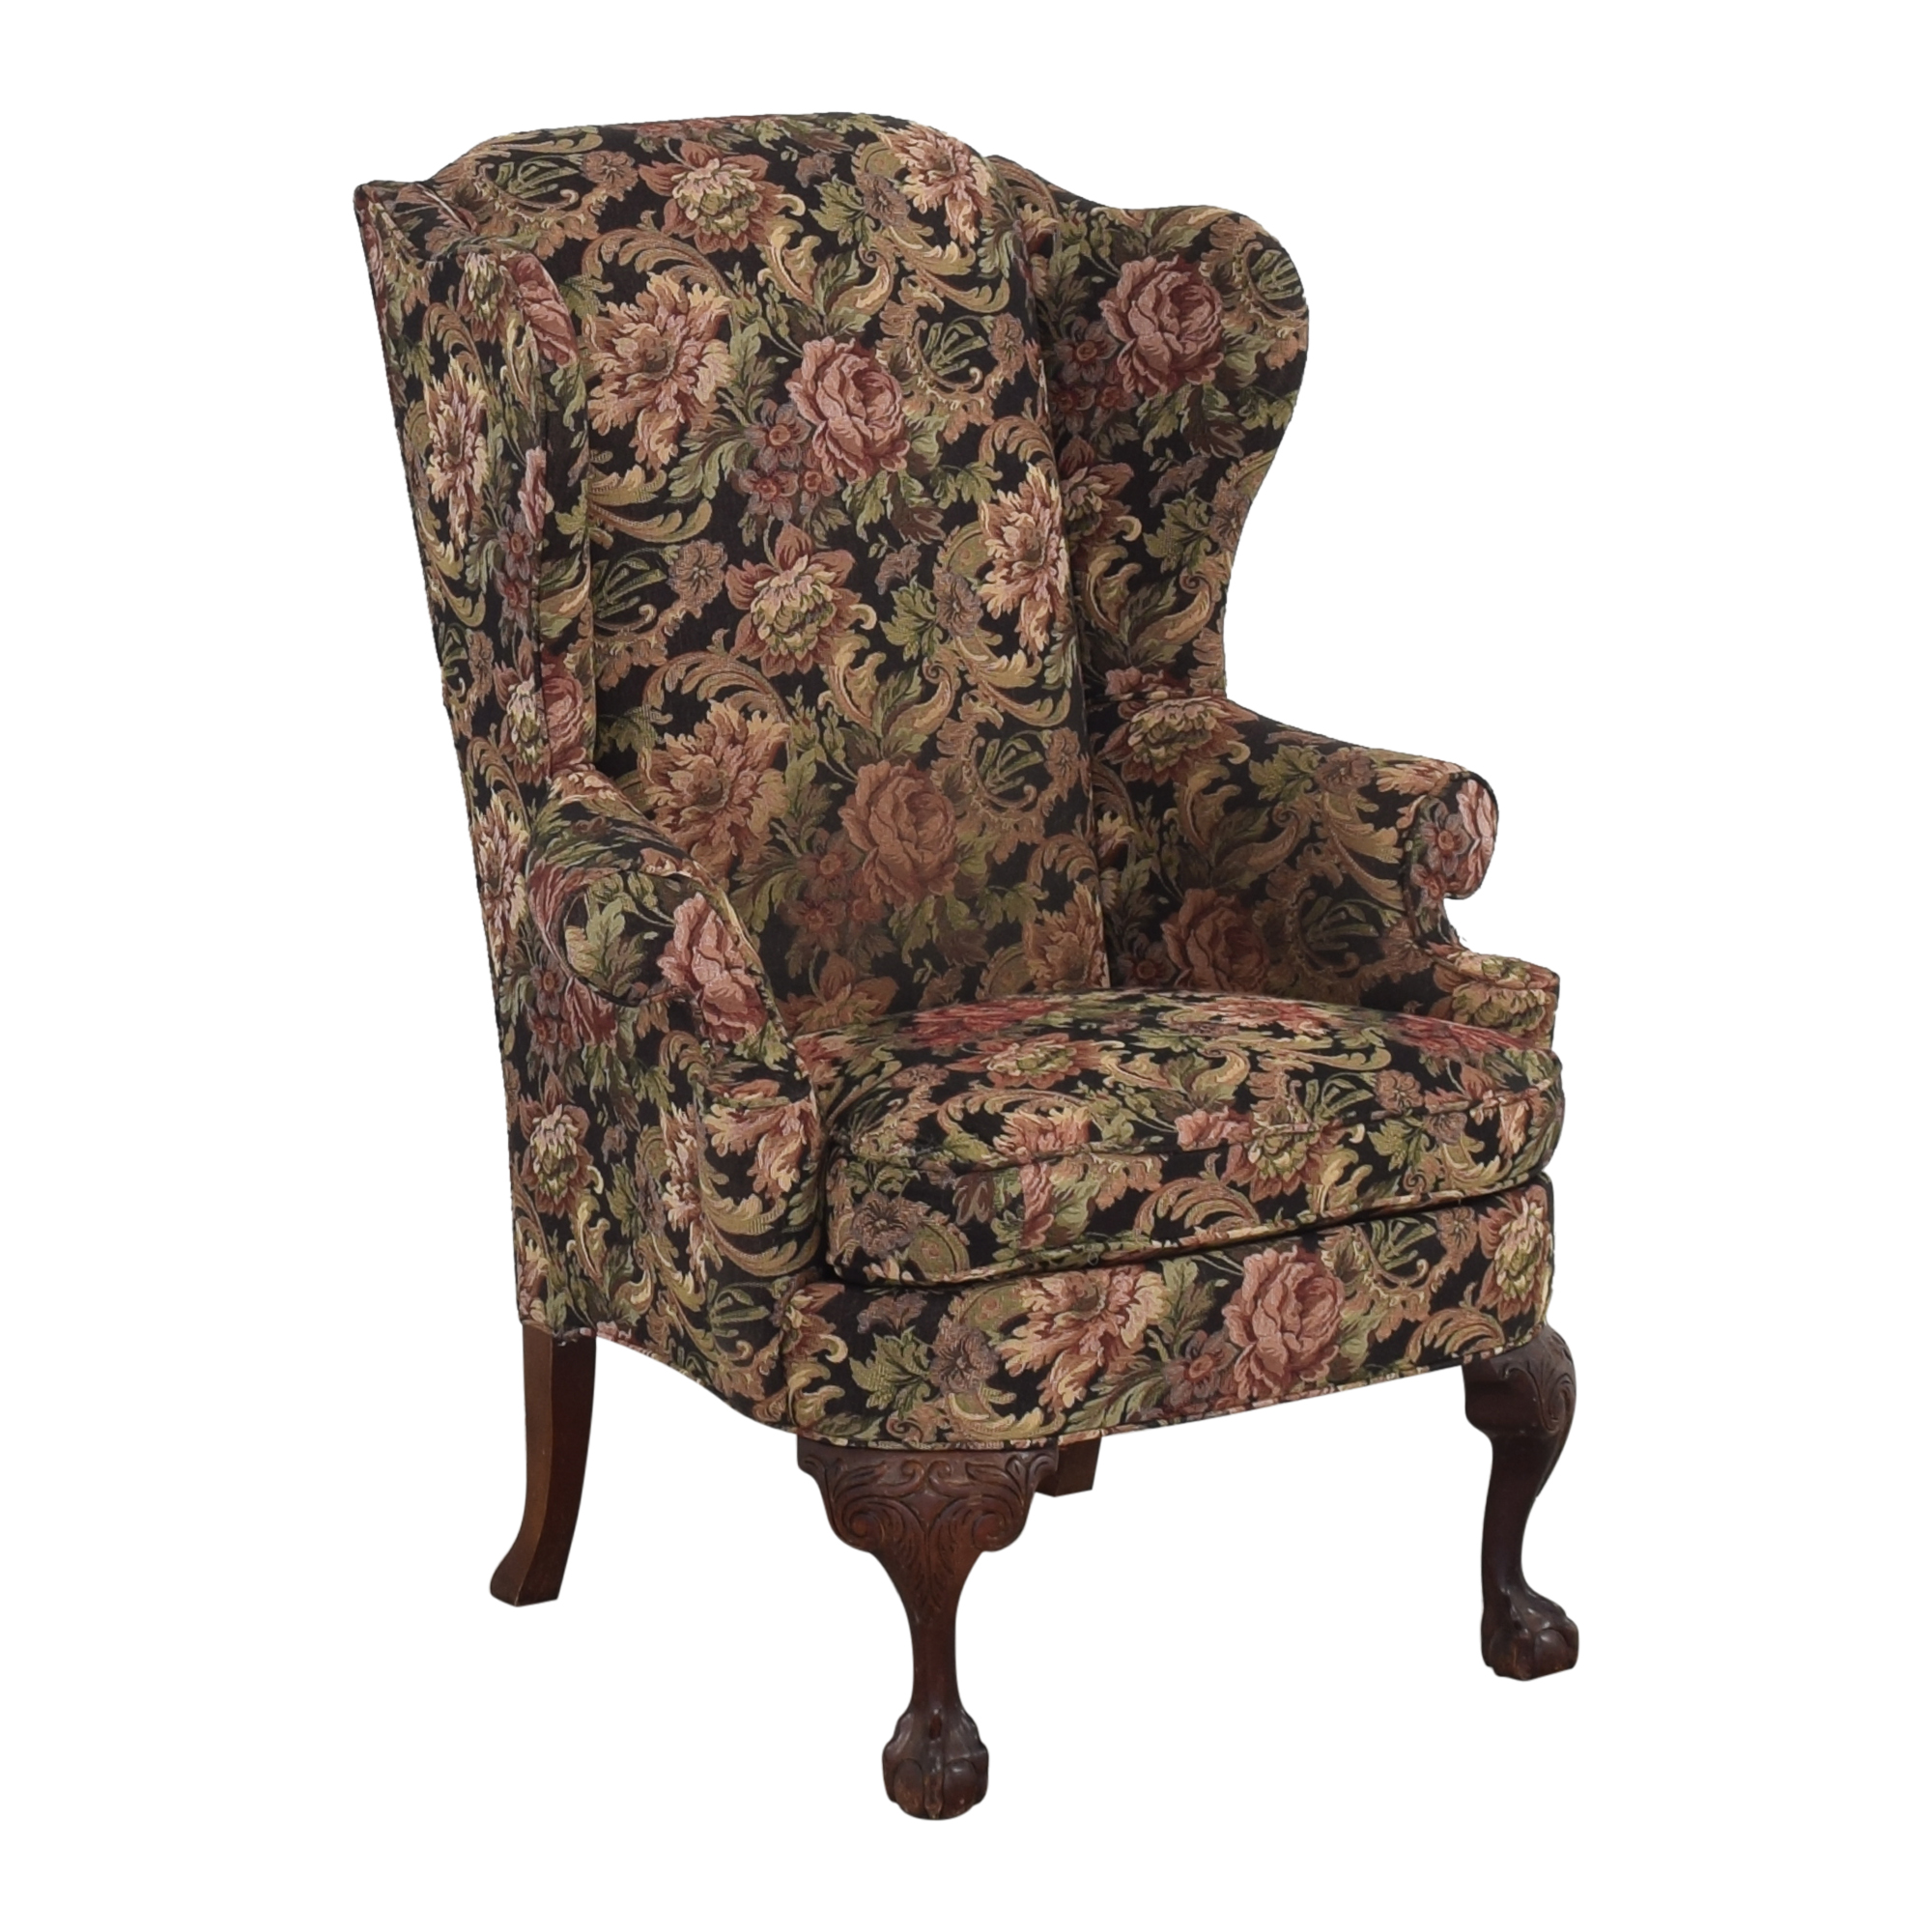 Thomasville Queen Anne Wing Back Chair / Accent Chairs